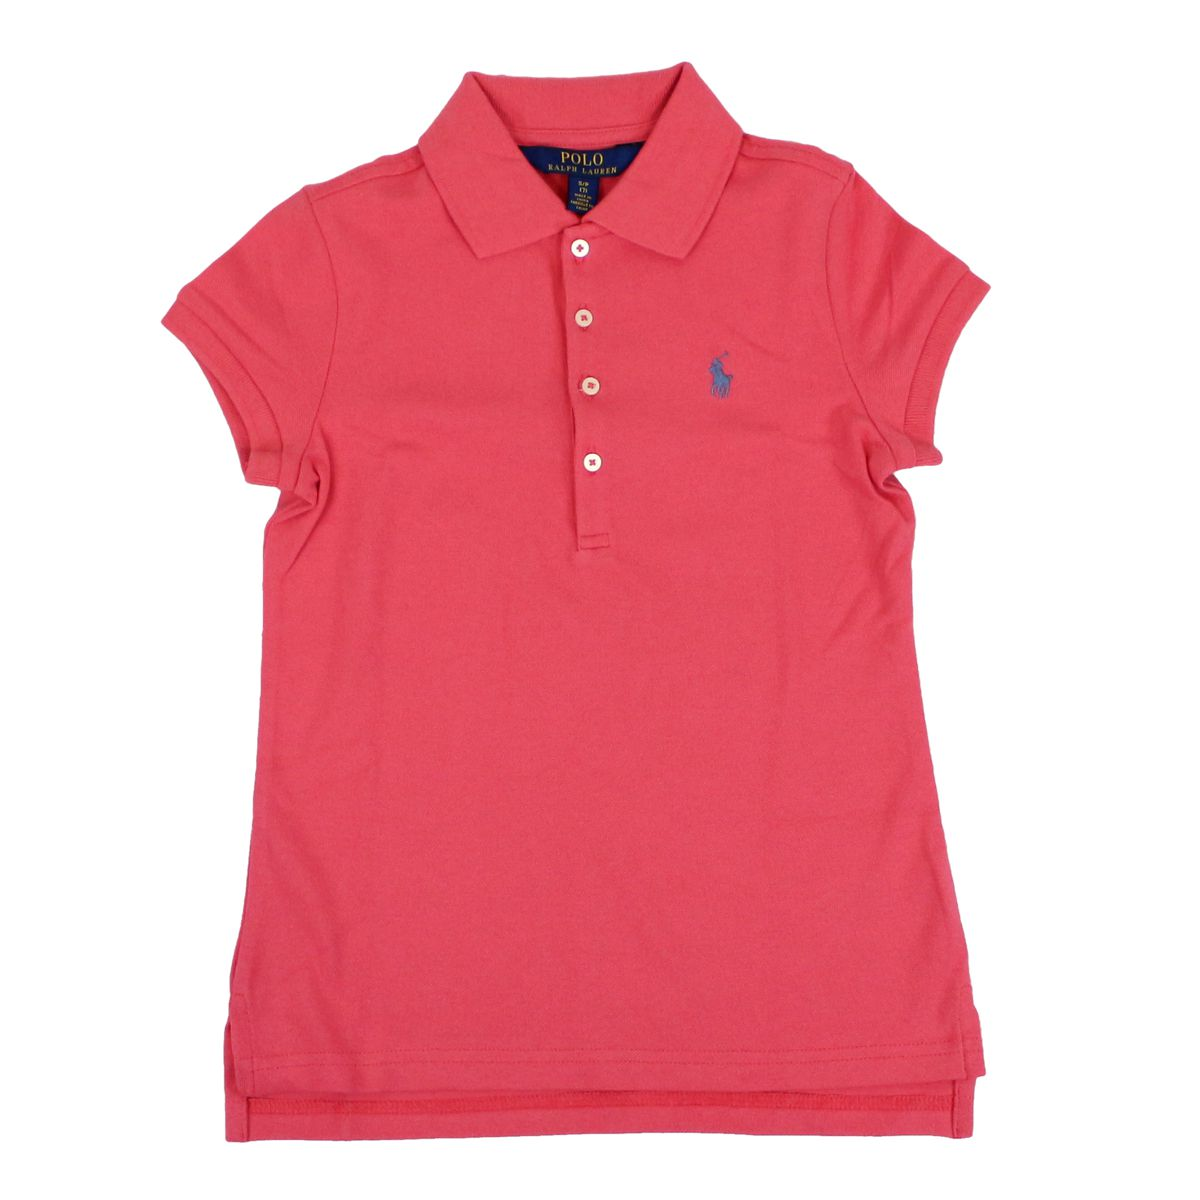 Silm-fit polo shirt with logo embroidery Strawberry Polo Ralph Lauren